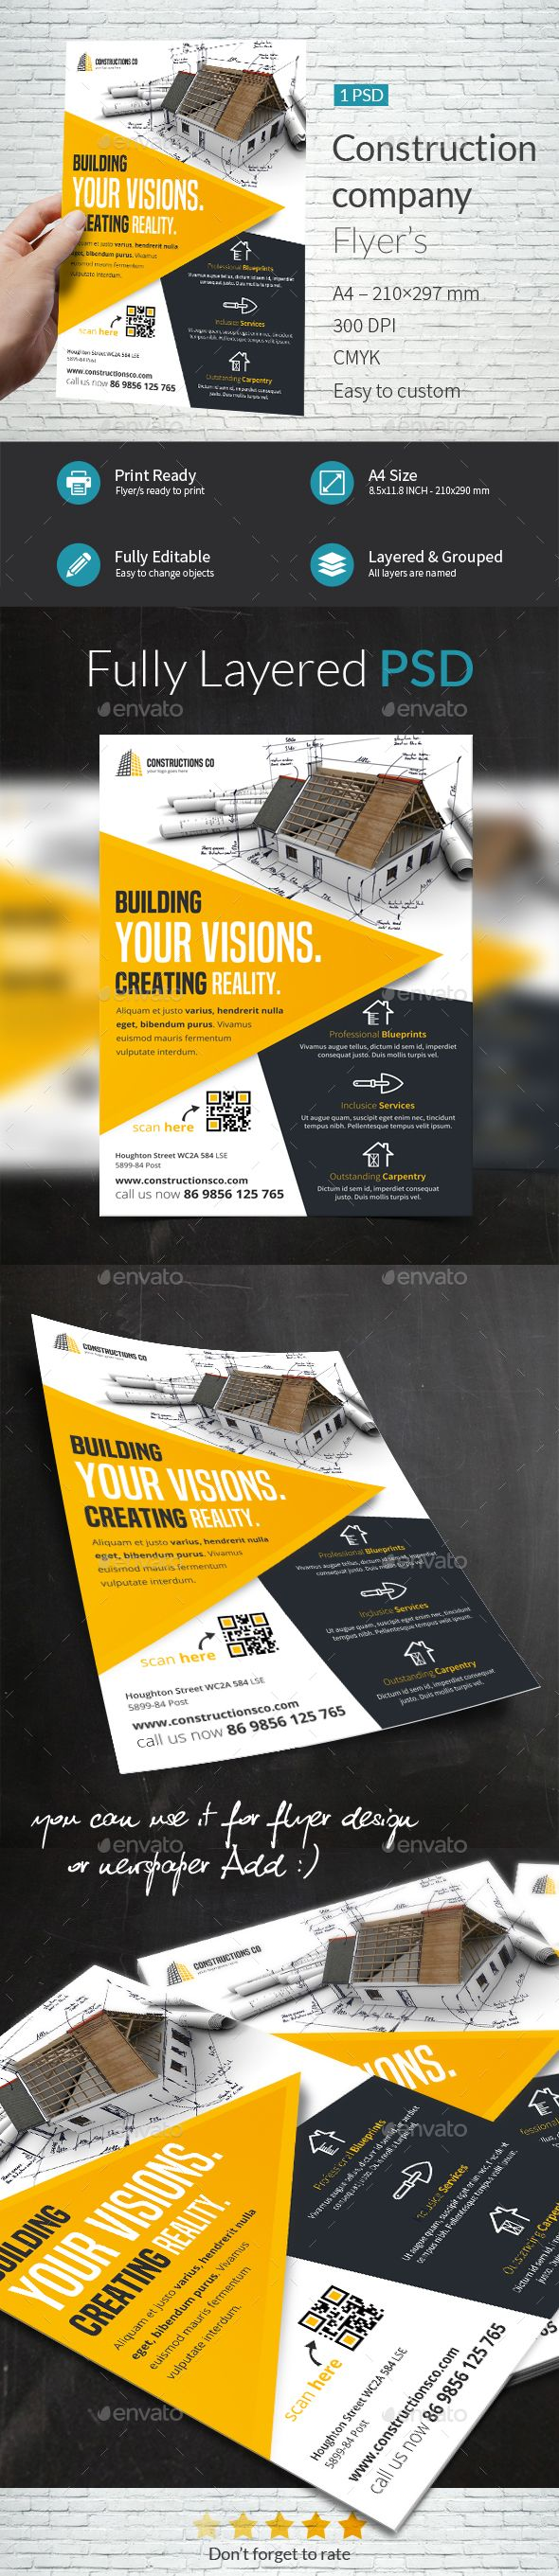 construction company flyer template flyers print templates download here